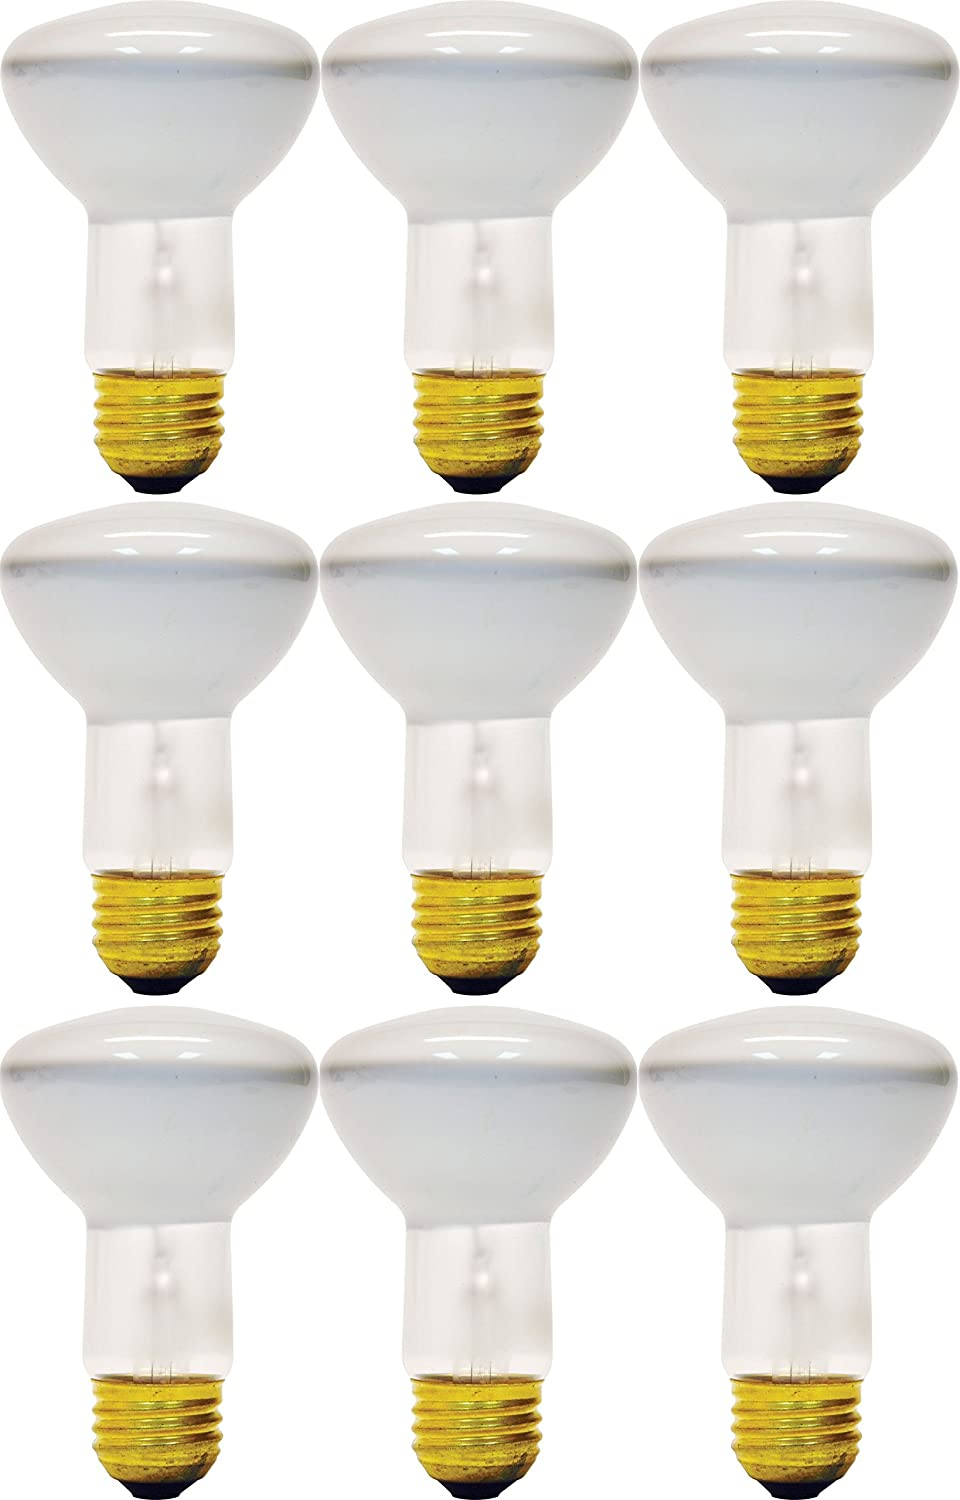 GE Lighting Soft White 73027 45-Watt, 310-Lumen R20 Floodlight Bulb with Medium Base, 12-Pack